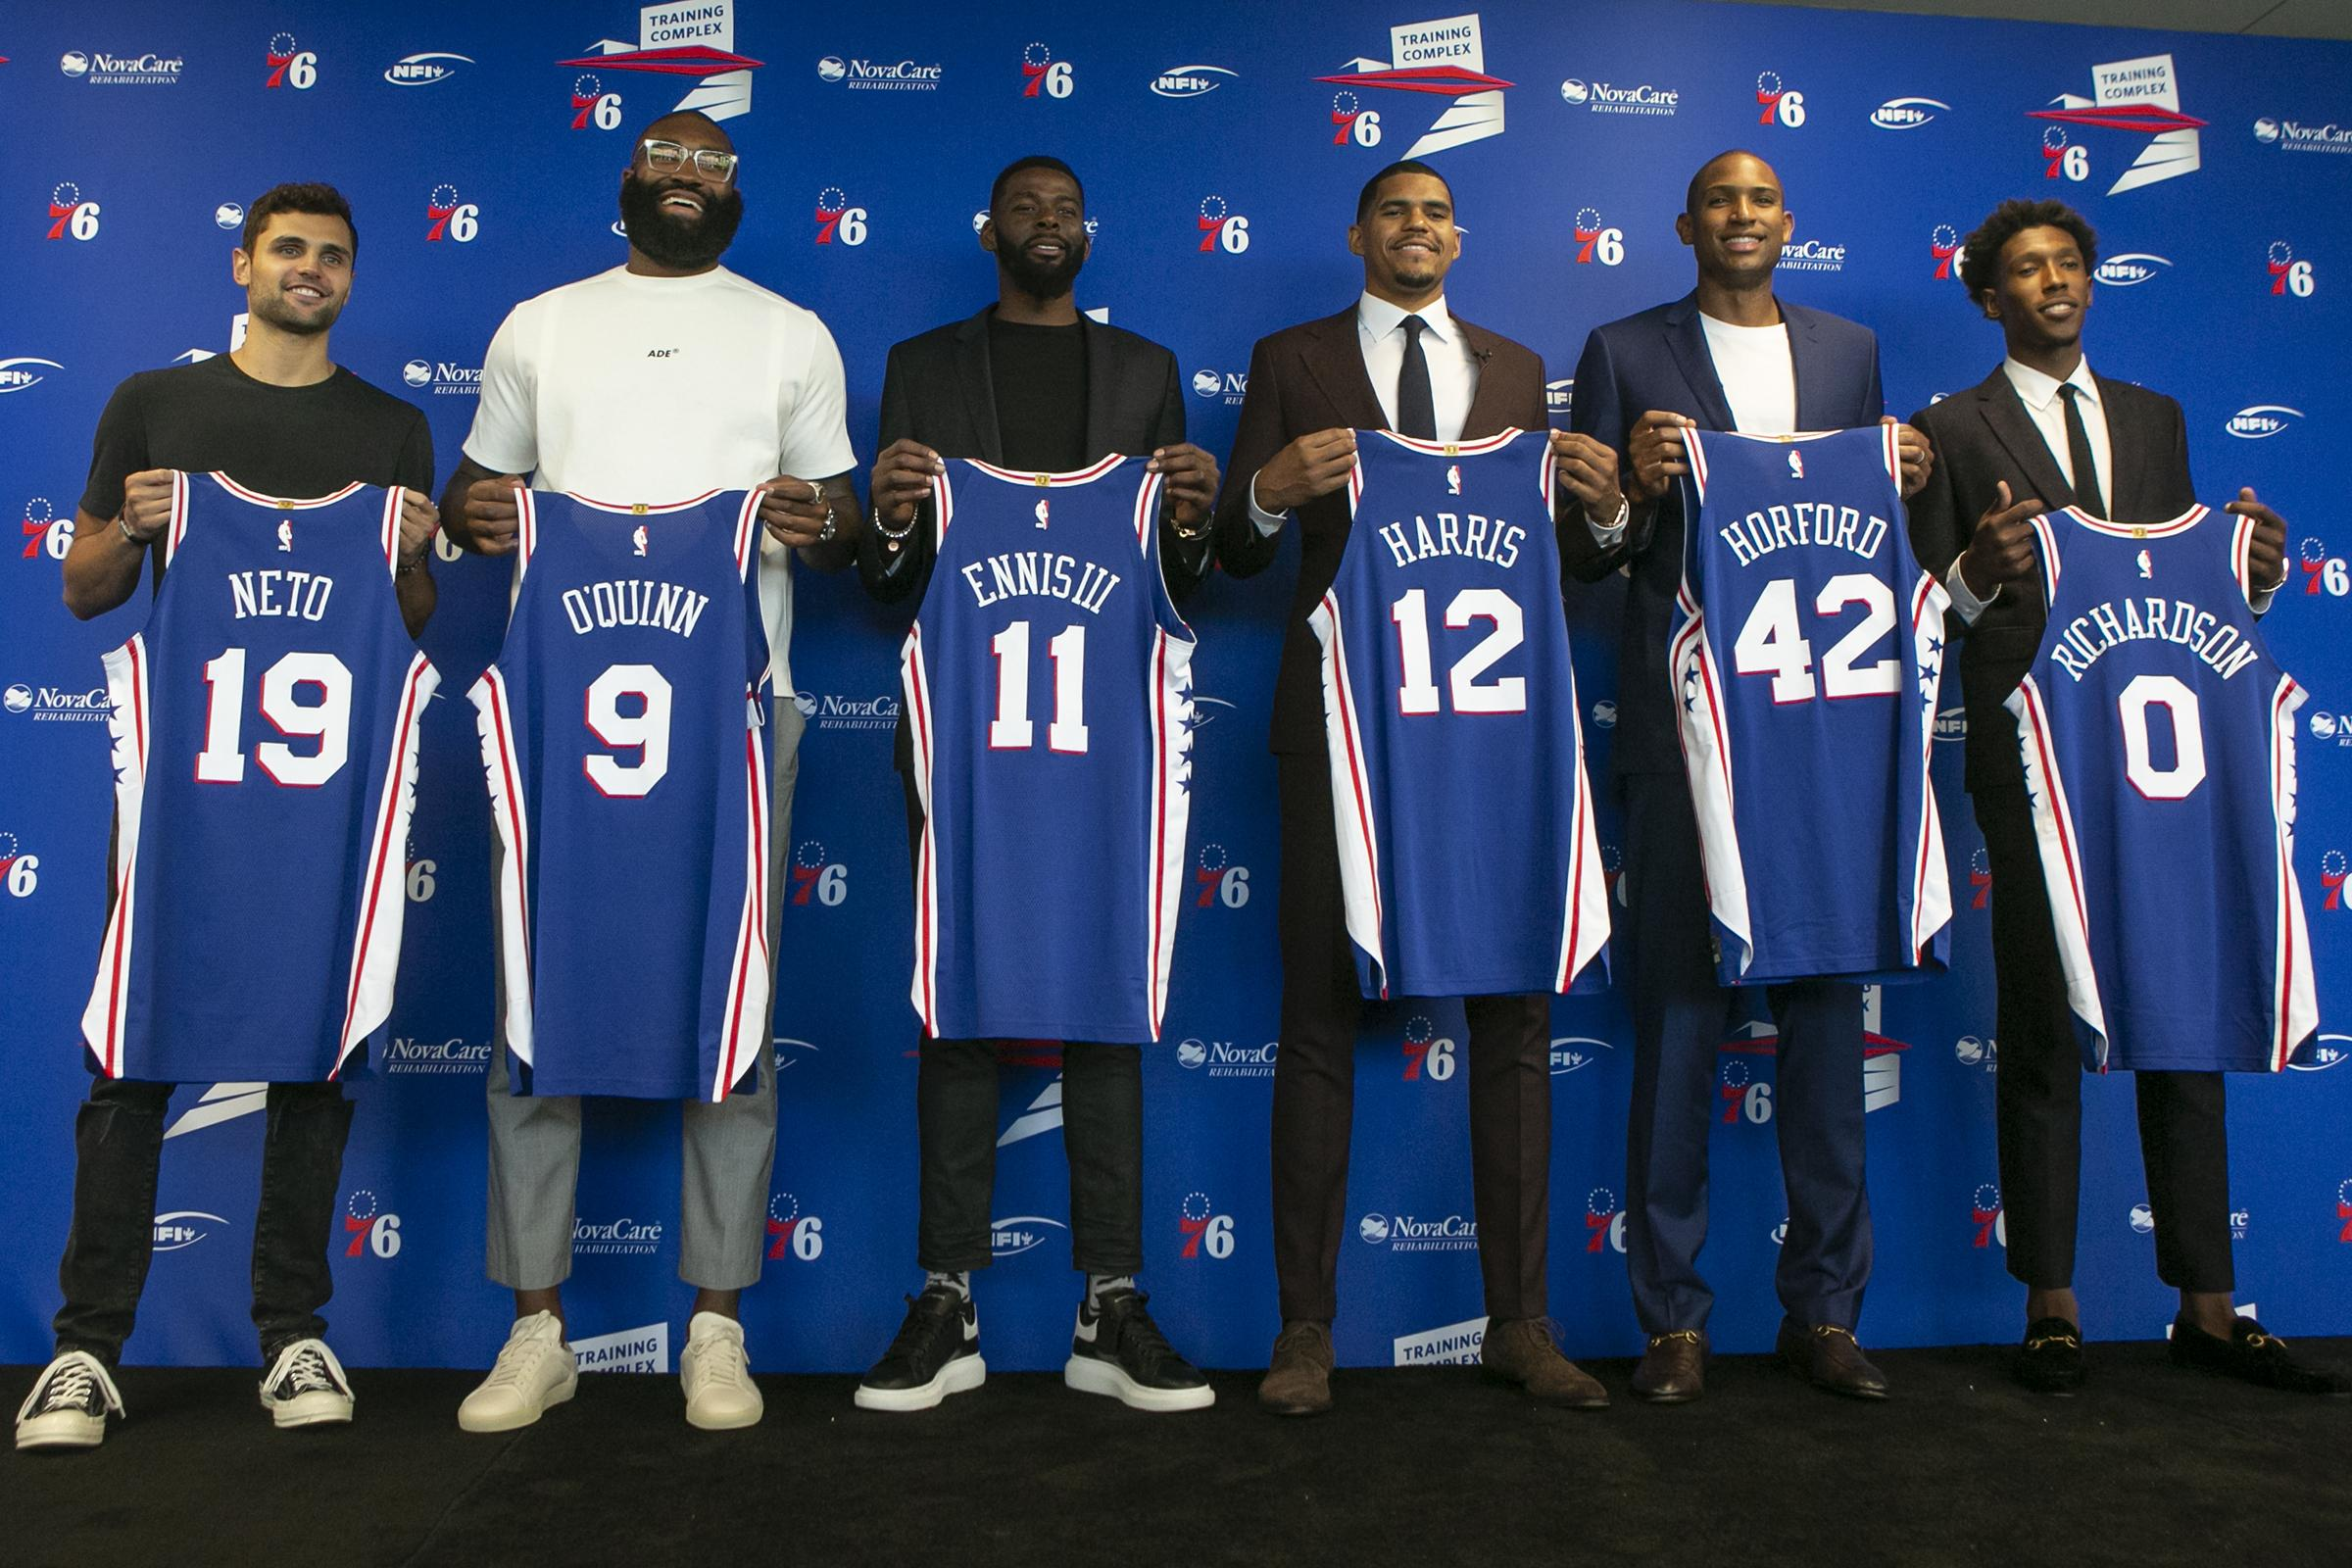 lowest price 9f564 65a2d 76ers unveil Al Horford & Co. as upgrades in championship ...